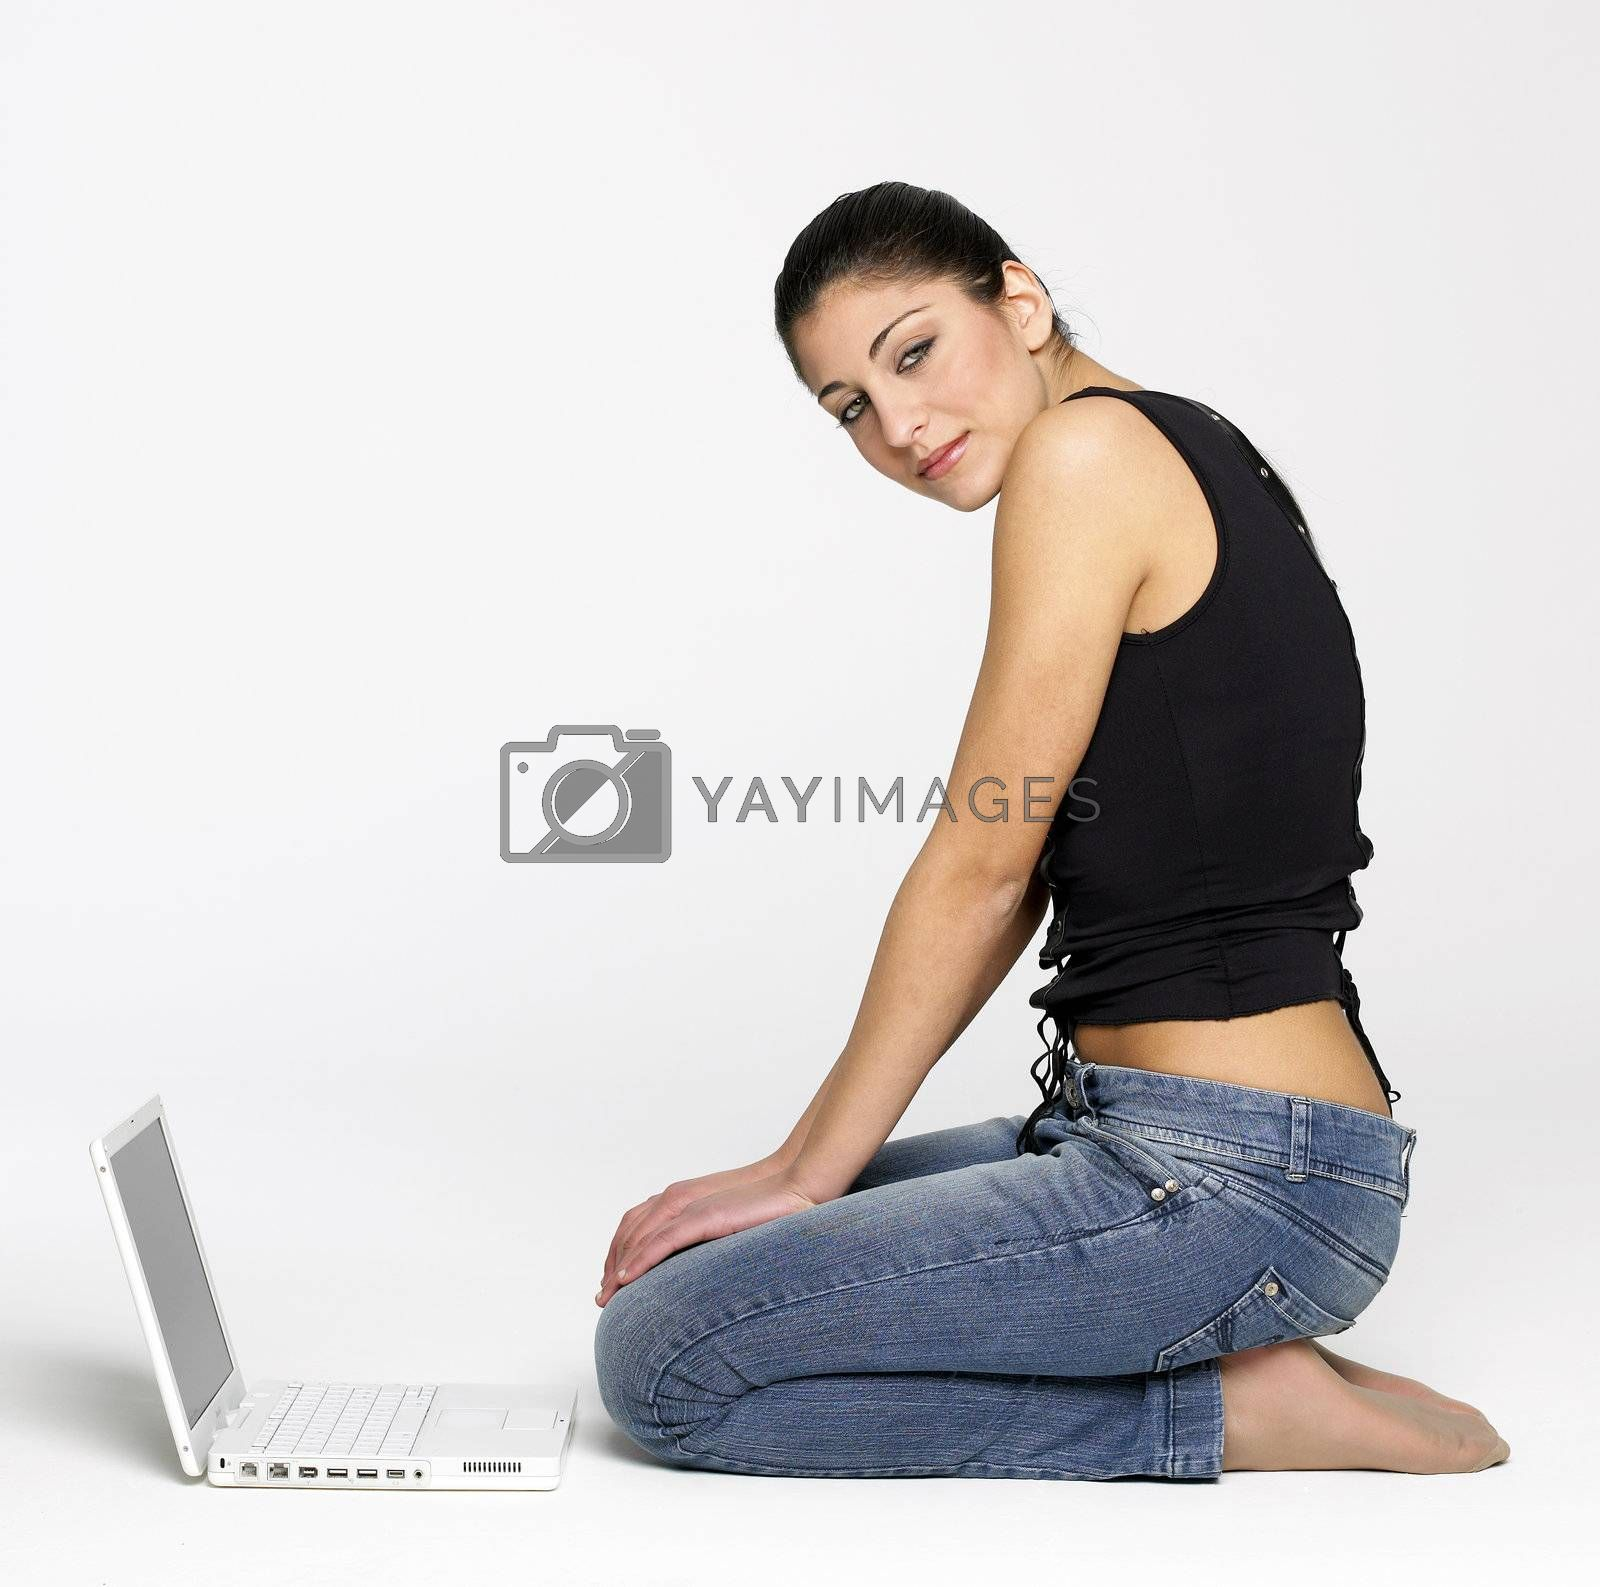 Pretty young girl sitting on floor with laptop